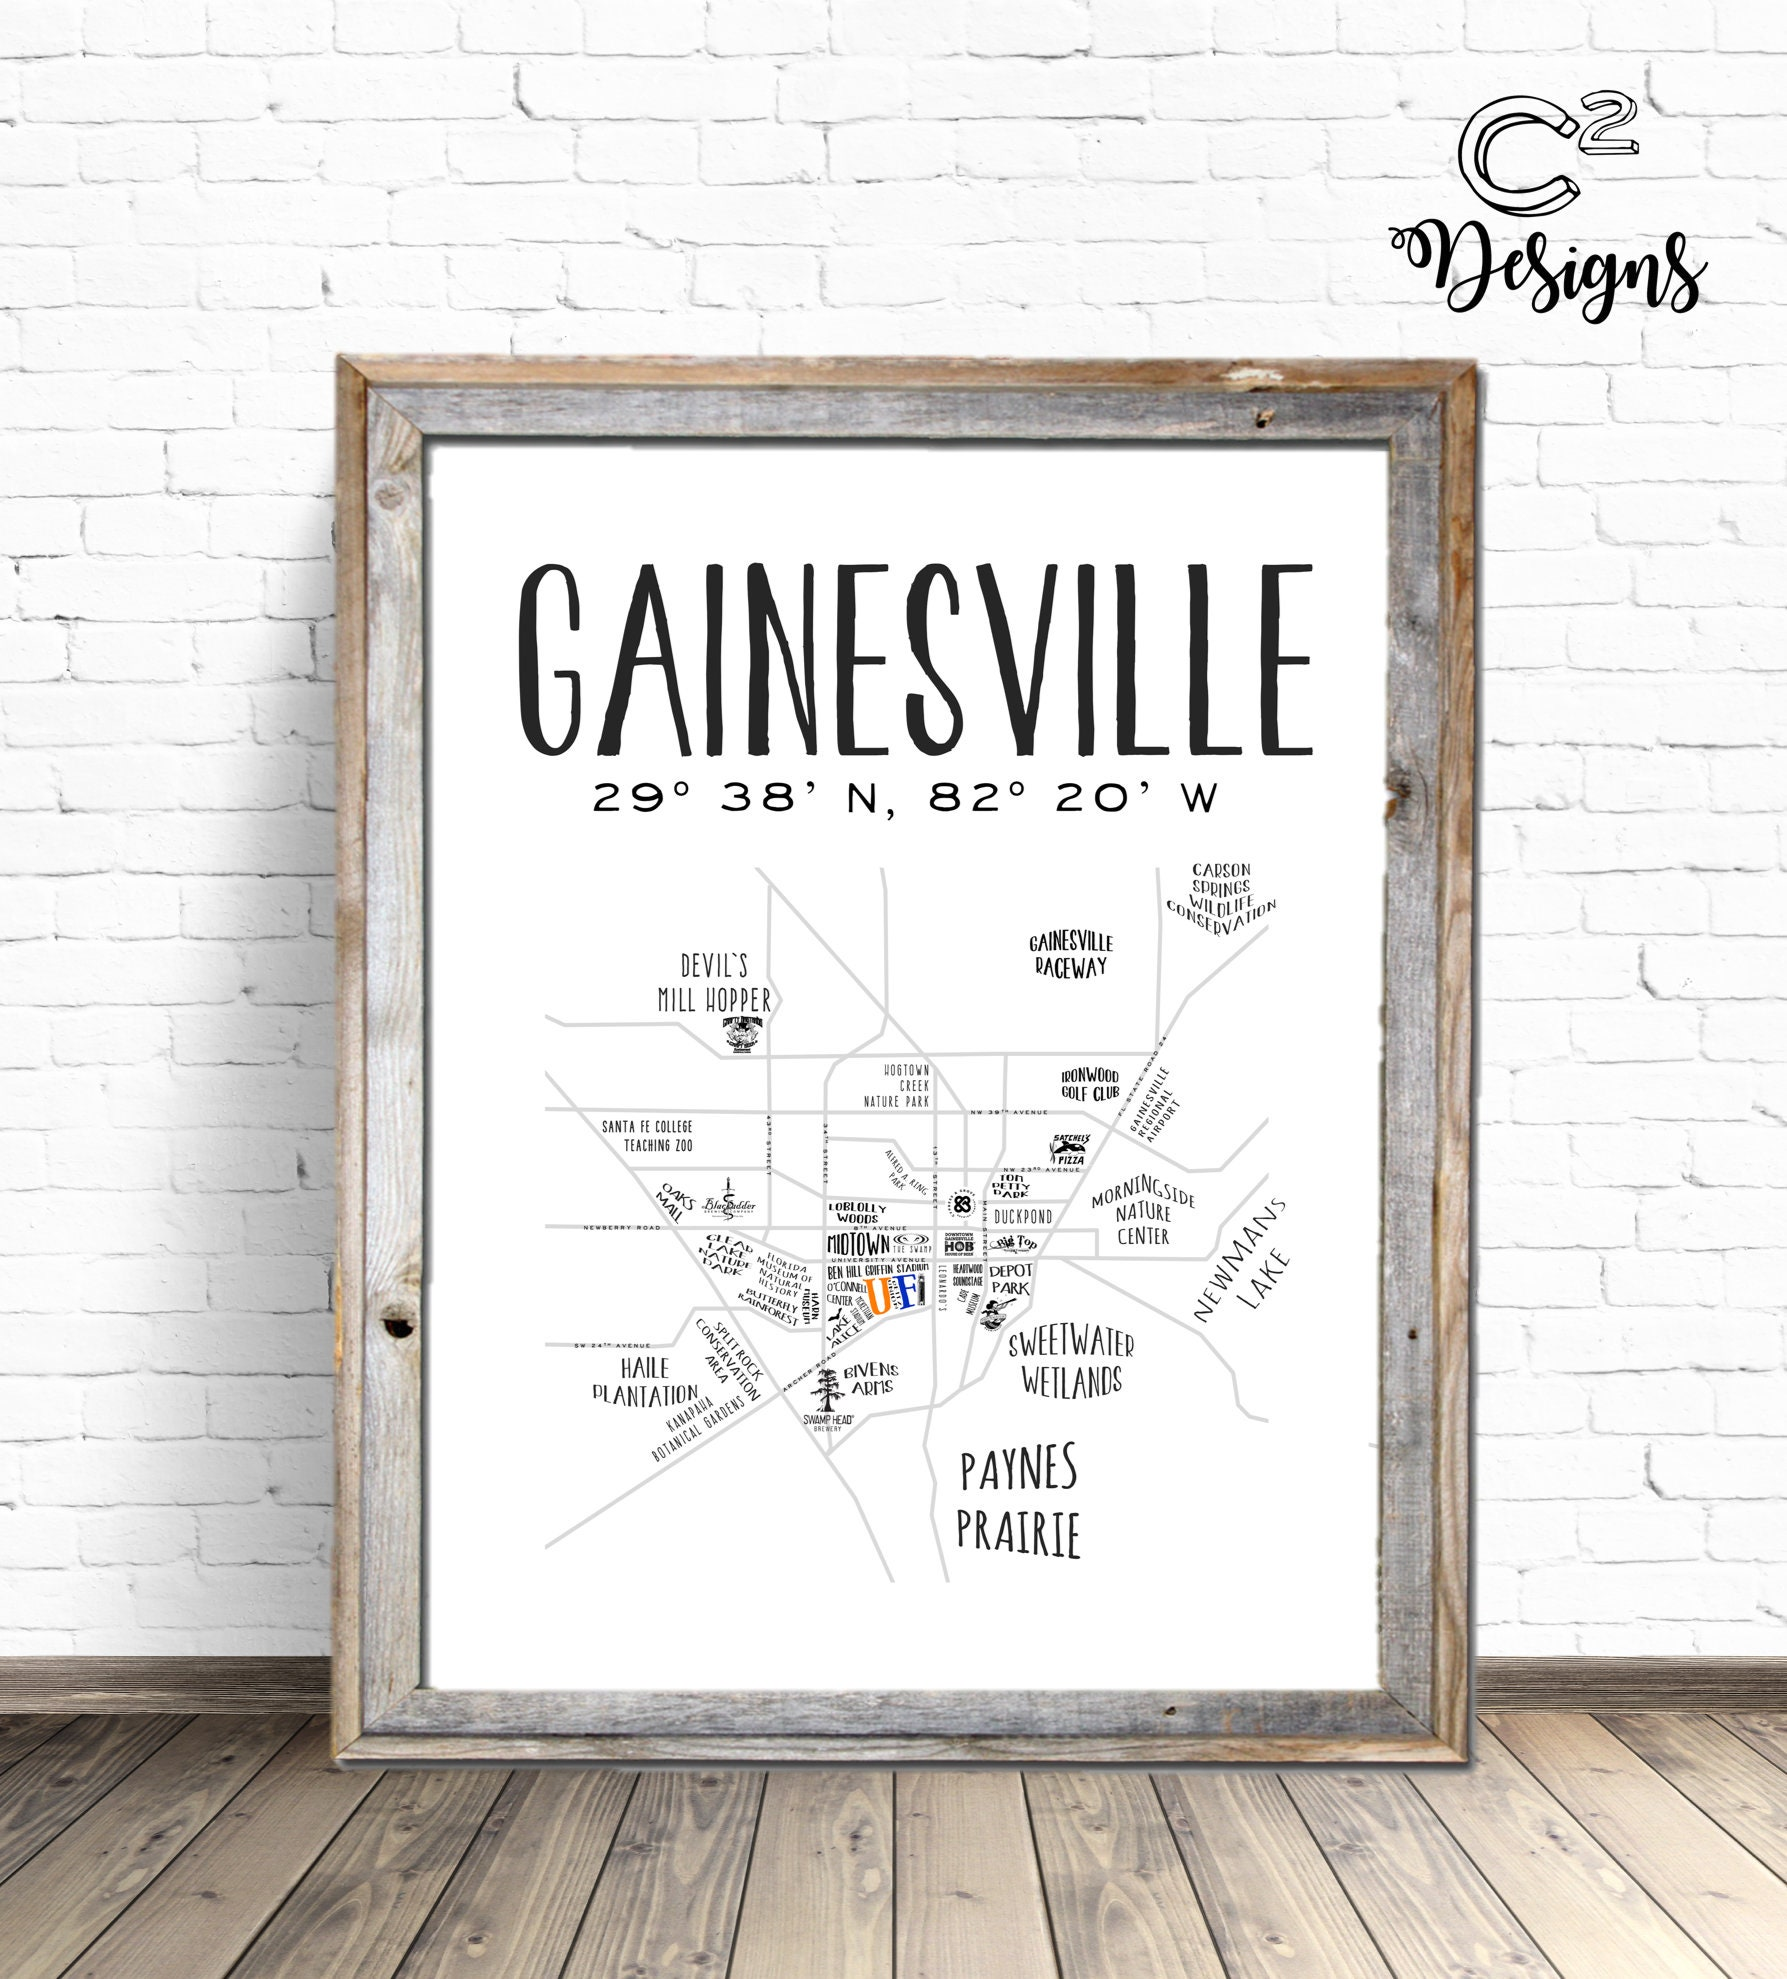 Gainesville Map | University of Florida Art Print on map of curacao, map of gulf coast of texas, map of bay, map of nc coast, map of kayak, map of panhandle, map of life, map of vernon fl, map of river, map of clear, map of sunrise, map of philippines, map of united states, map of venezuela, map of park, map of washington, map of ocala, map of west palm beach, map of wild, map of key largo,